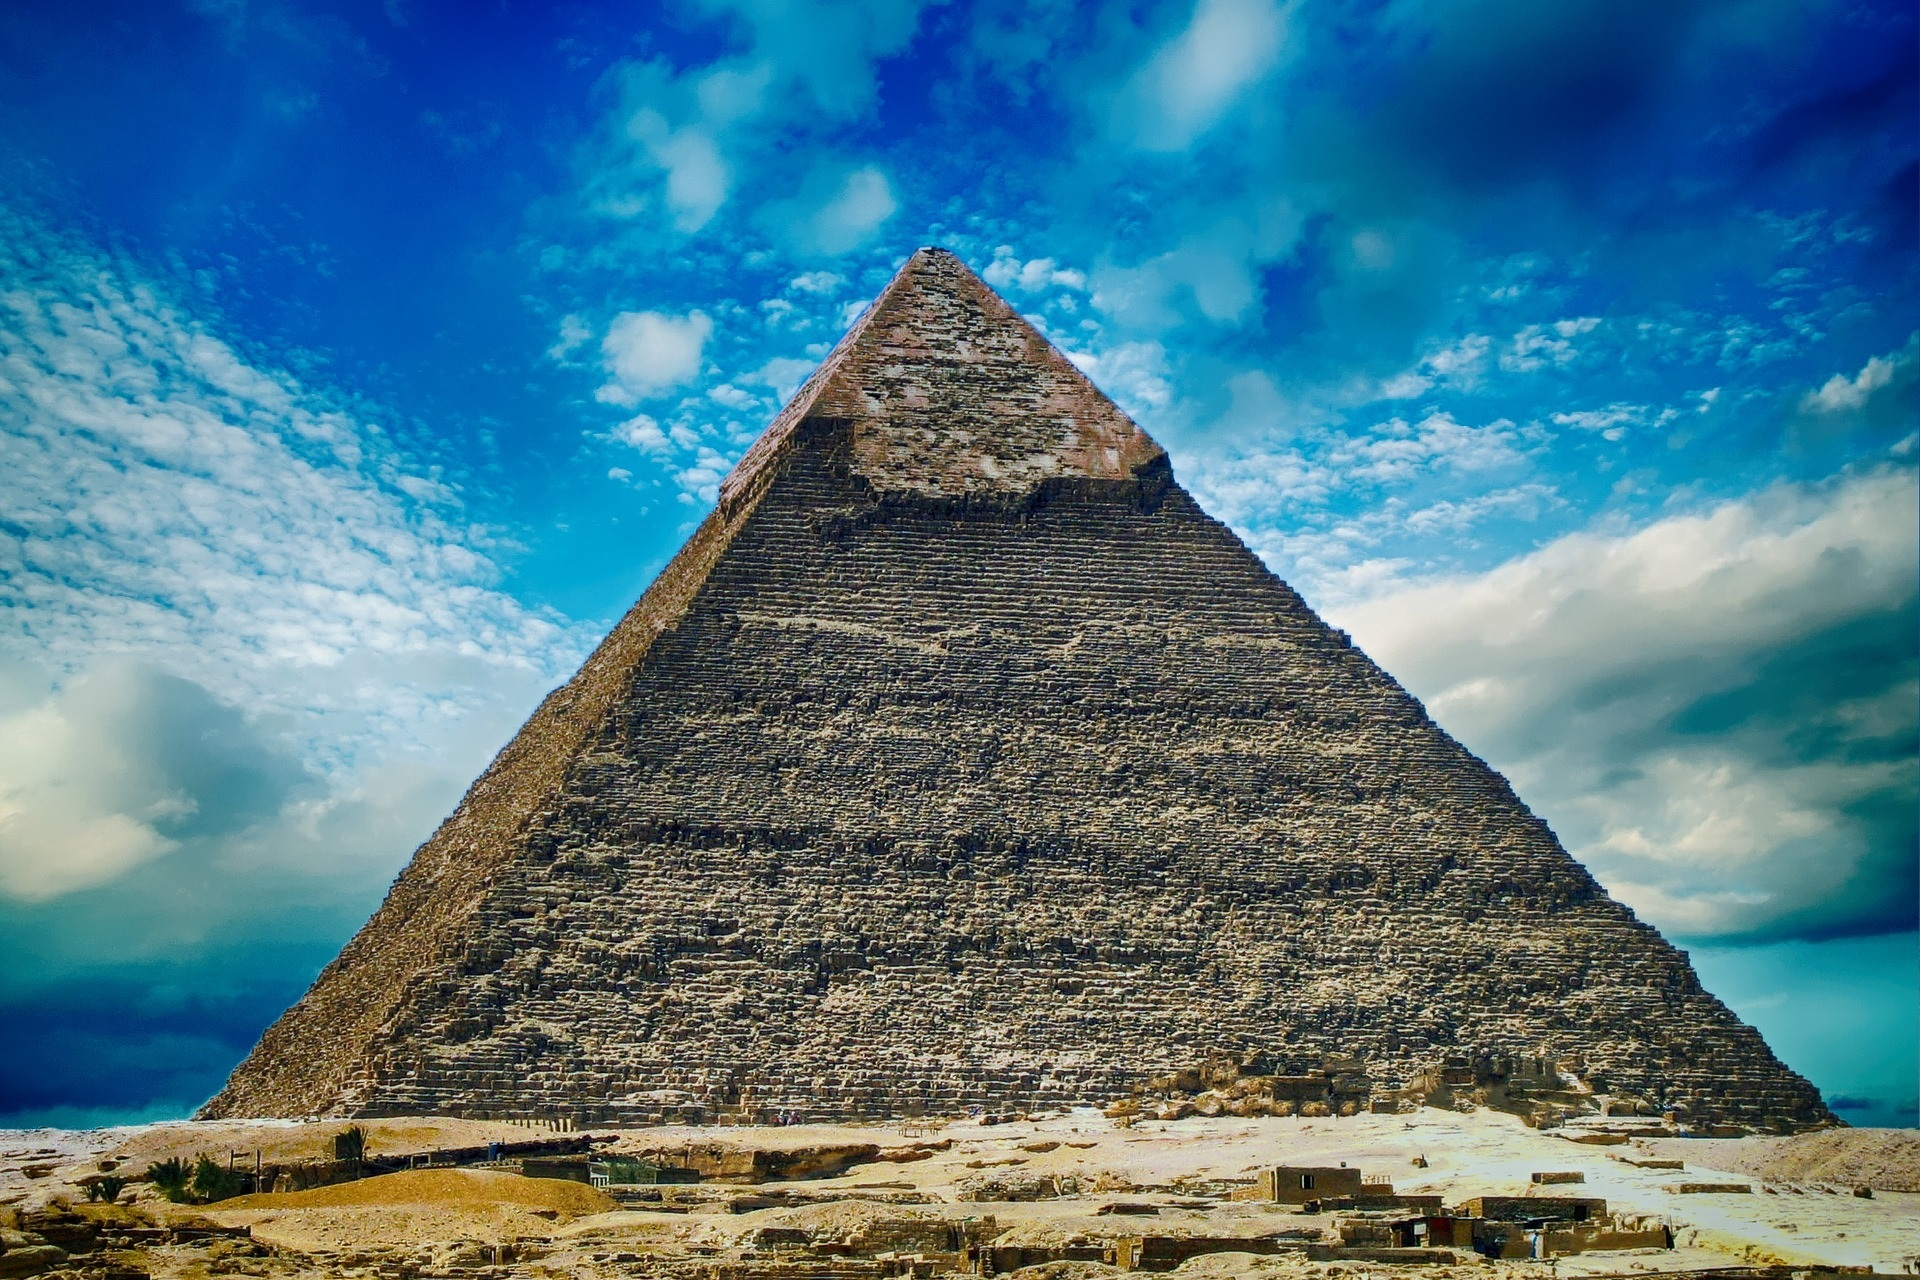 Pyramid Meditation… - This is a very powerful contemplative practice. It is adapted from Maslow's hierarchy of needs as symbolized in the human body - safety and security from the core down, love and belonging in the heart, freedom and expression in the throat, peace and well-being in the head and spirit or self-actualization transcending the physical form. Through concentration, non-judgmental perception and deeper breathing, we can activate the relaxation response to support psychological healing and mind-body wellness.